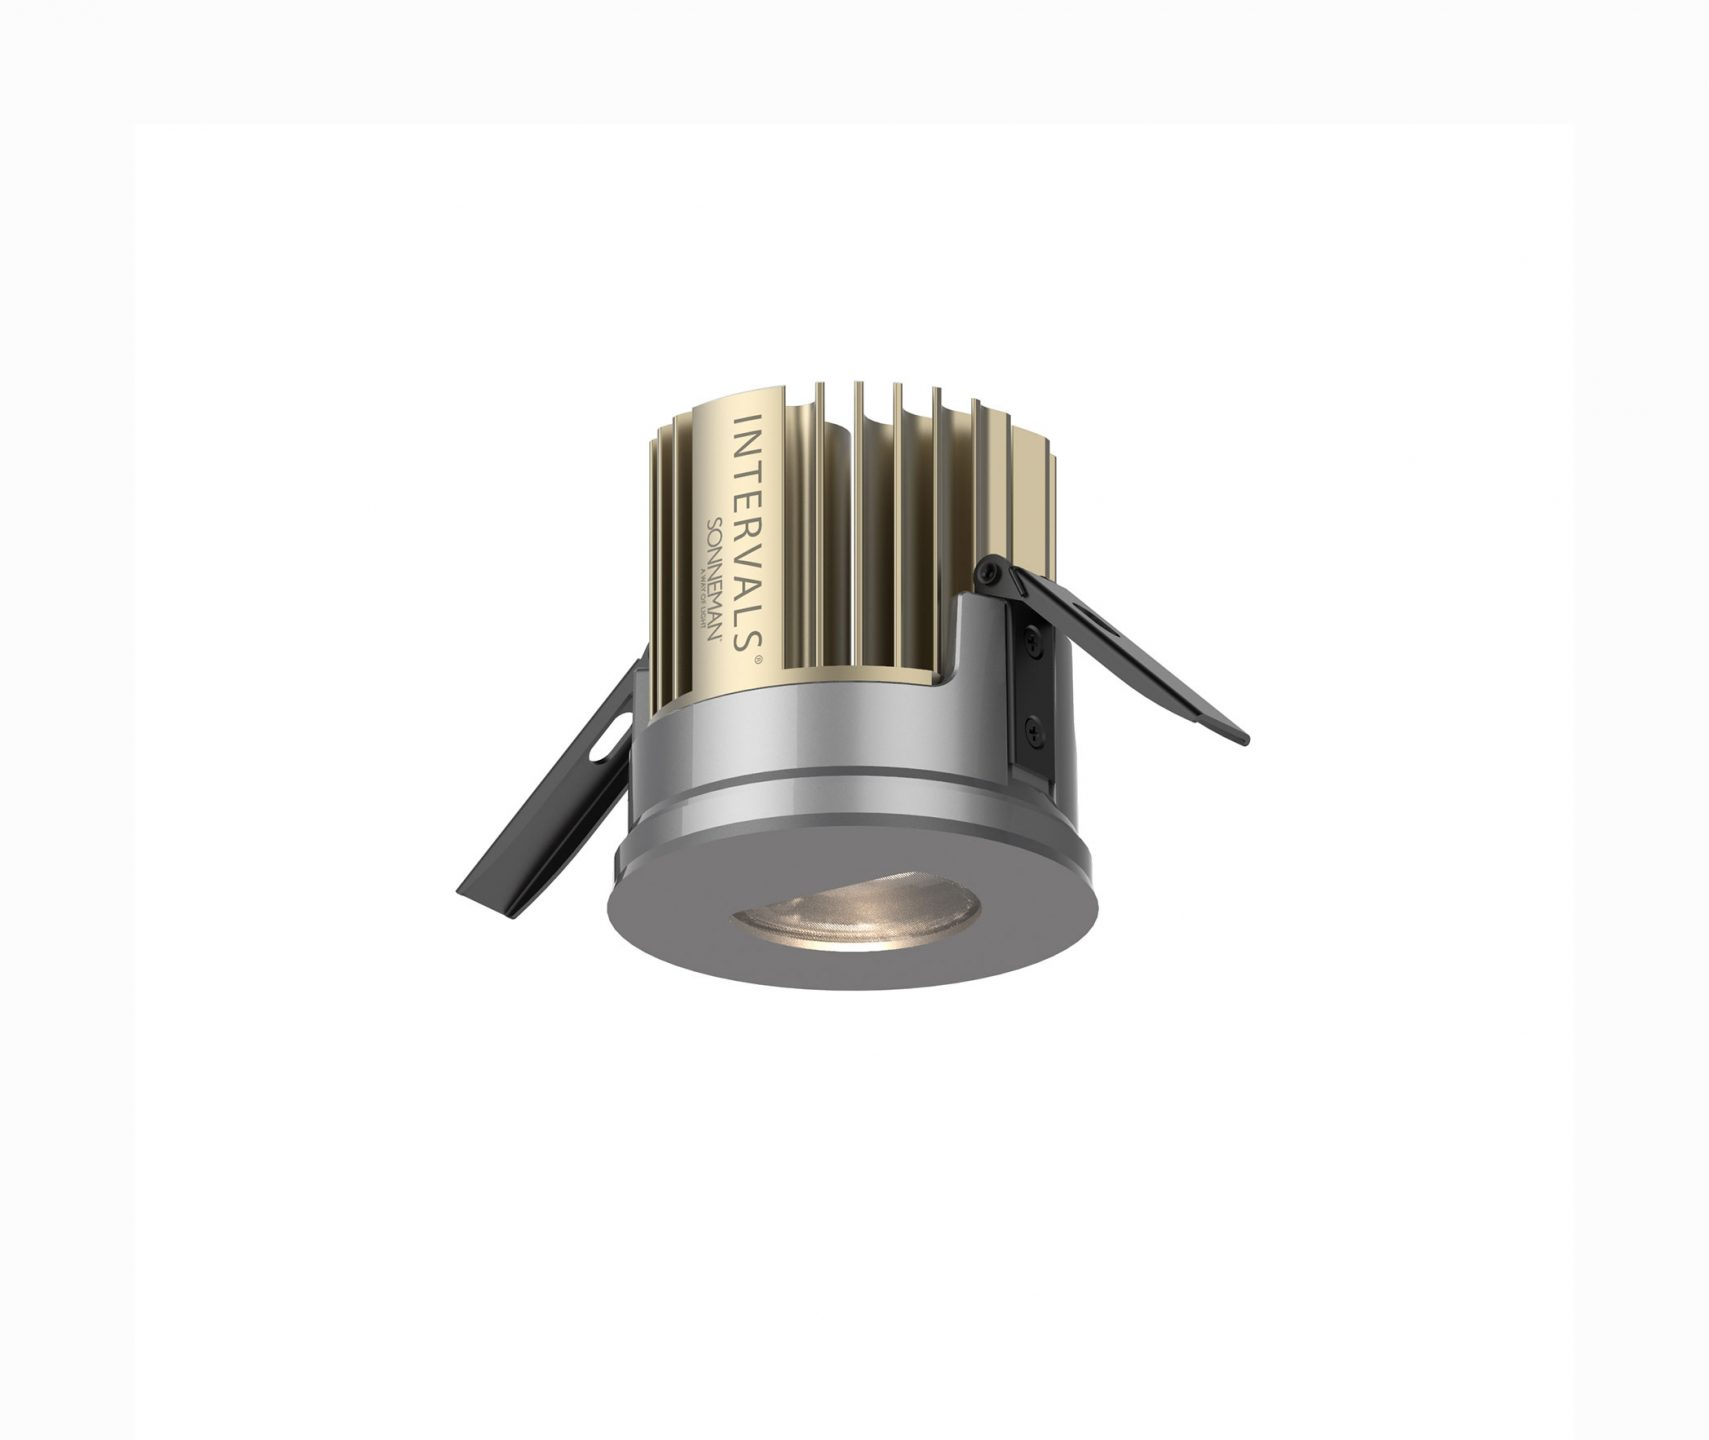 SONNEMAN_Intervals-Recessed-Downlights-Wall-Wash-1_int_products